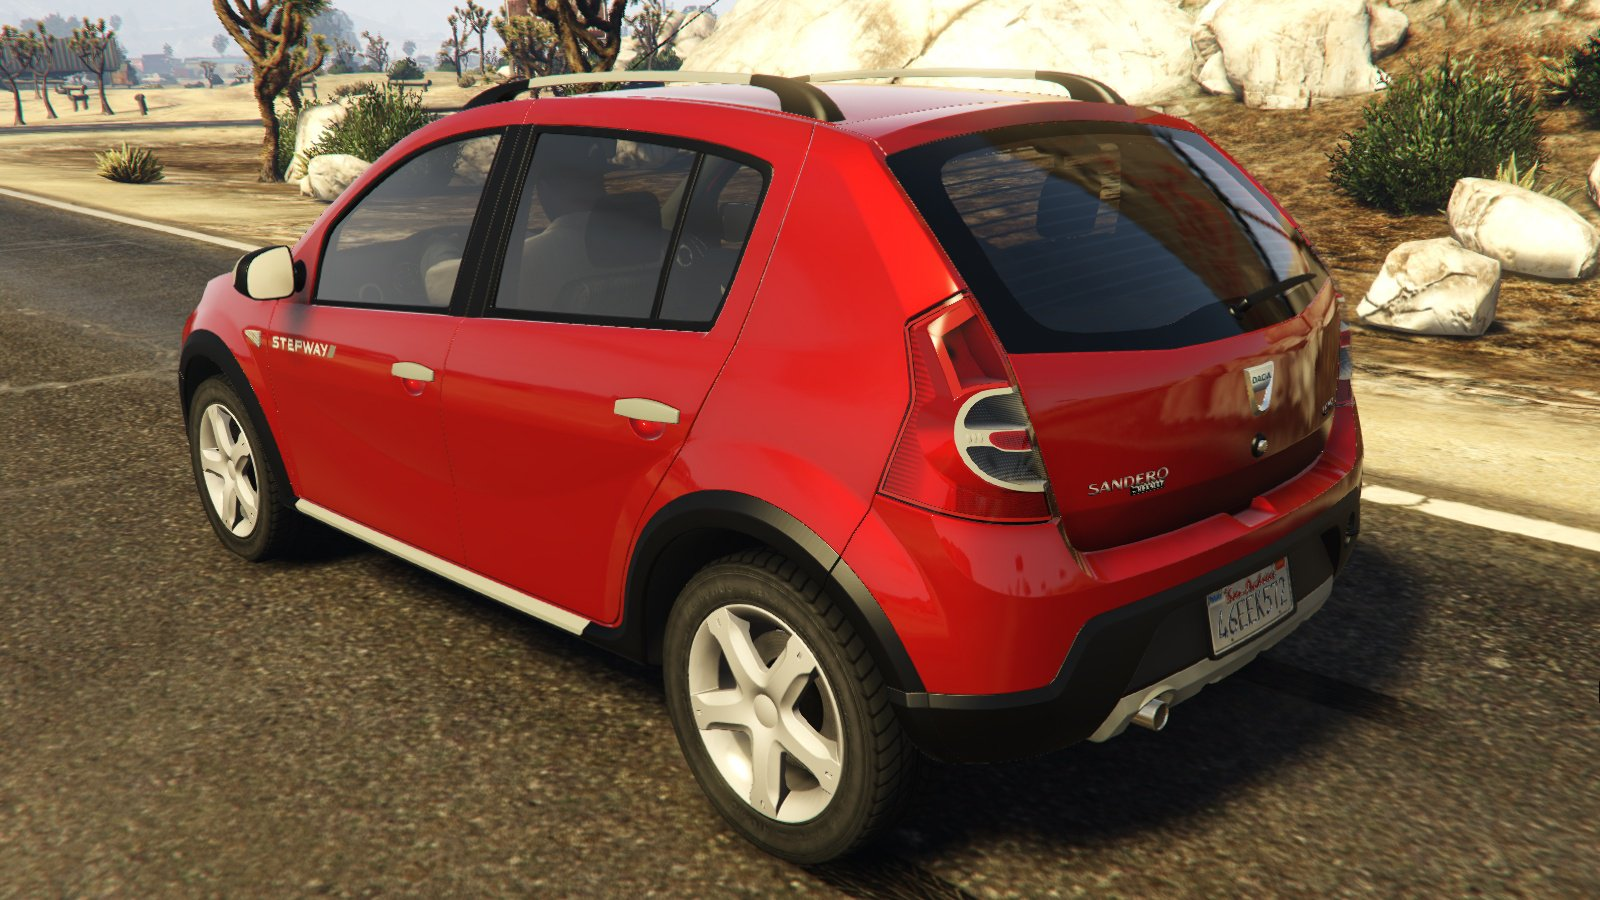 dacia sandero stepway 2008 vehicules pour gta v sur gta modding. Black Bedroom Furniture Sets. Home Design Ideas